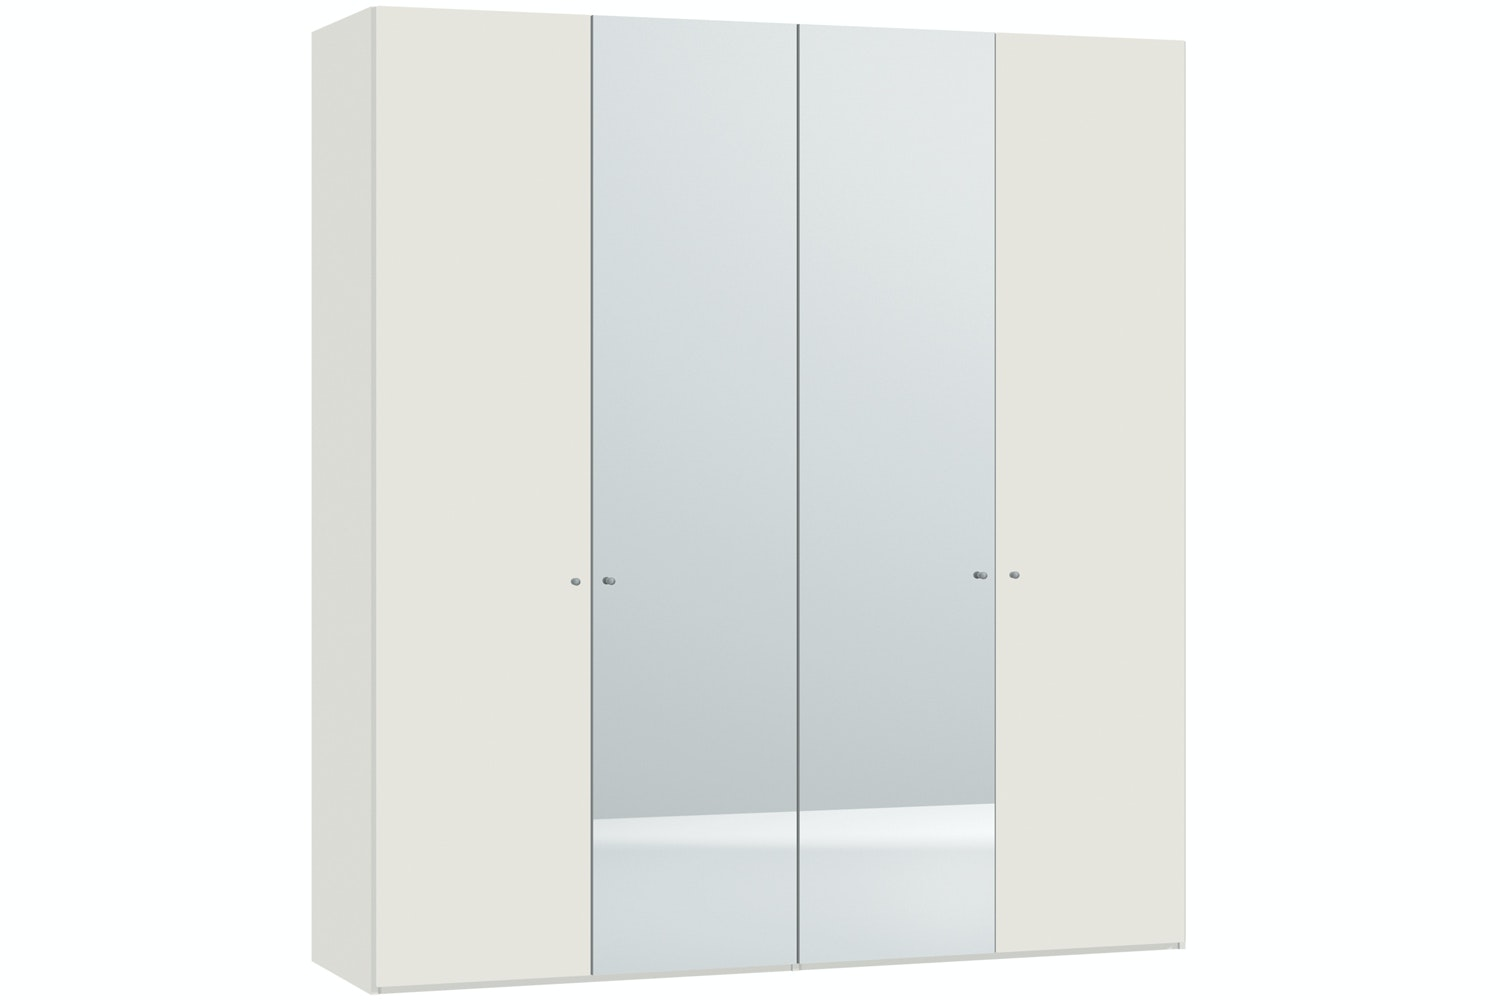 Emer Hinged 4 Door Wardrobe 203Cm | White + Mirror